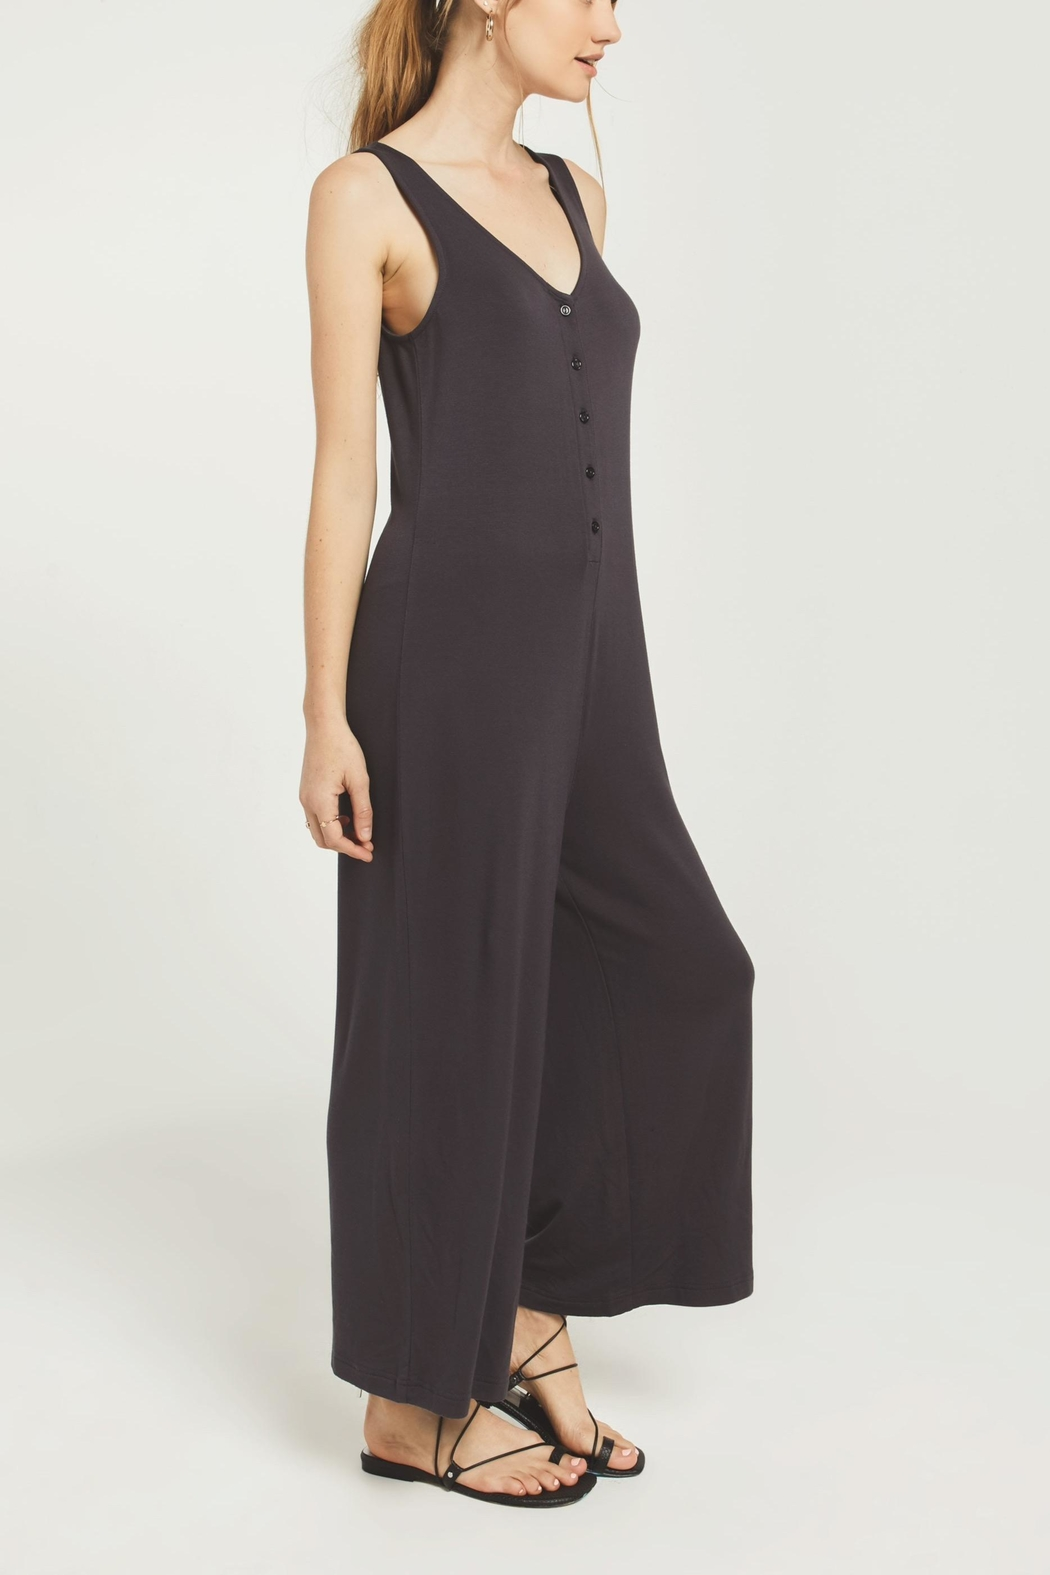 z supply Mojave Jumpsuit - Front Full Image